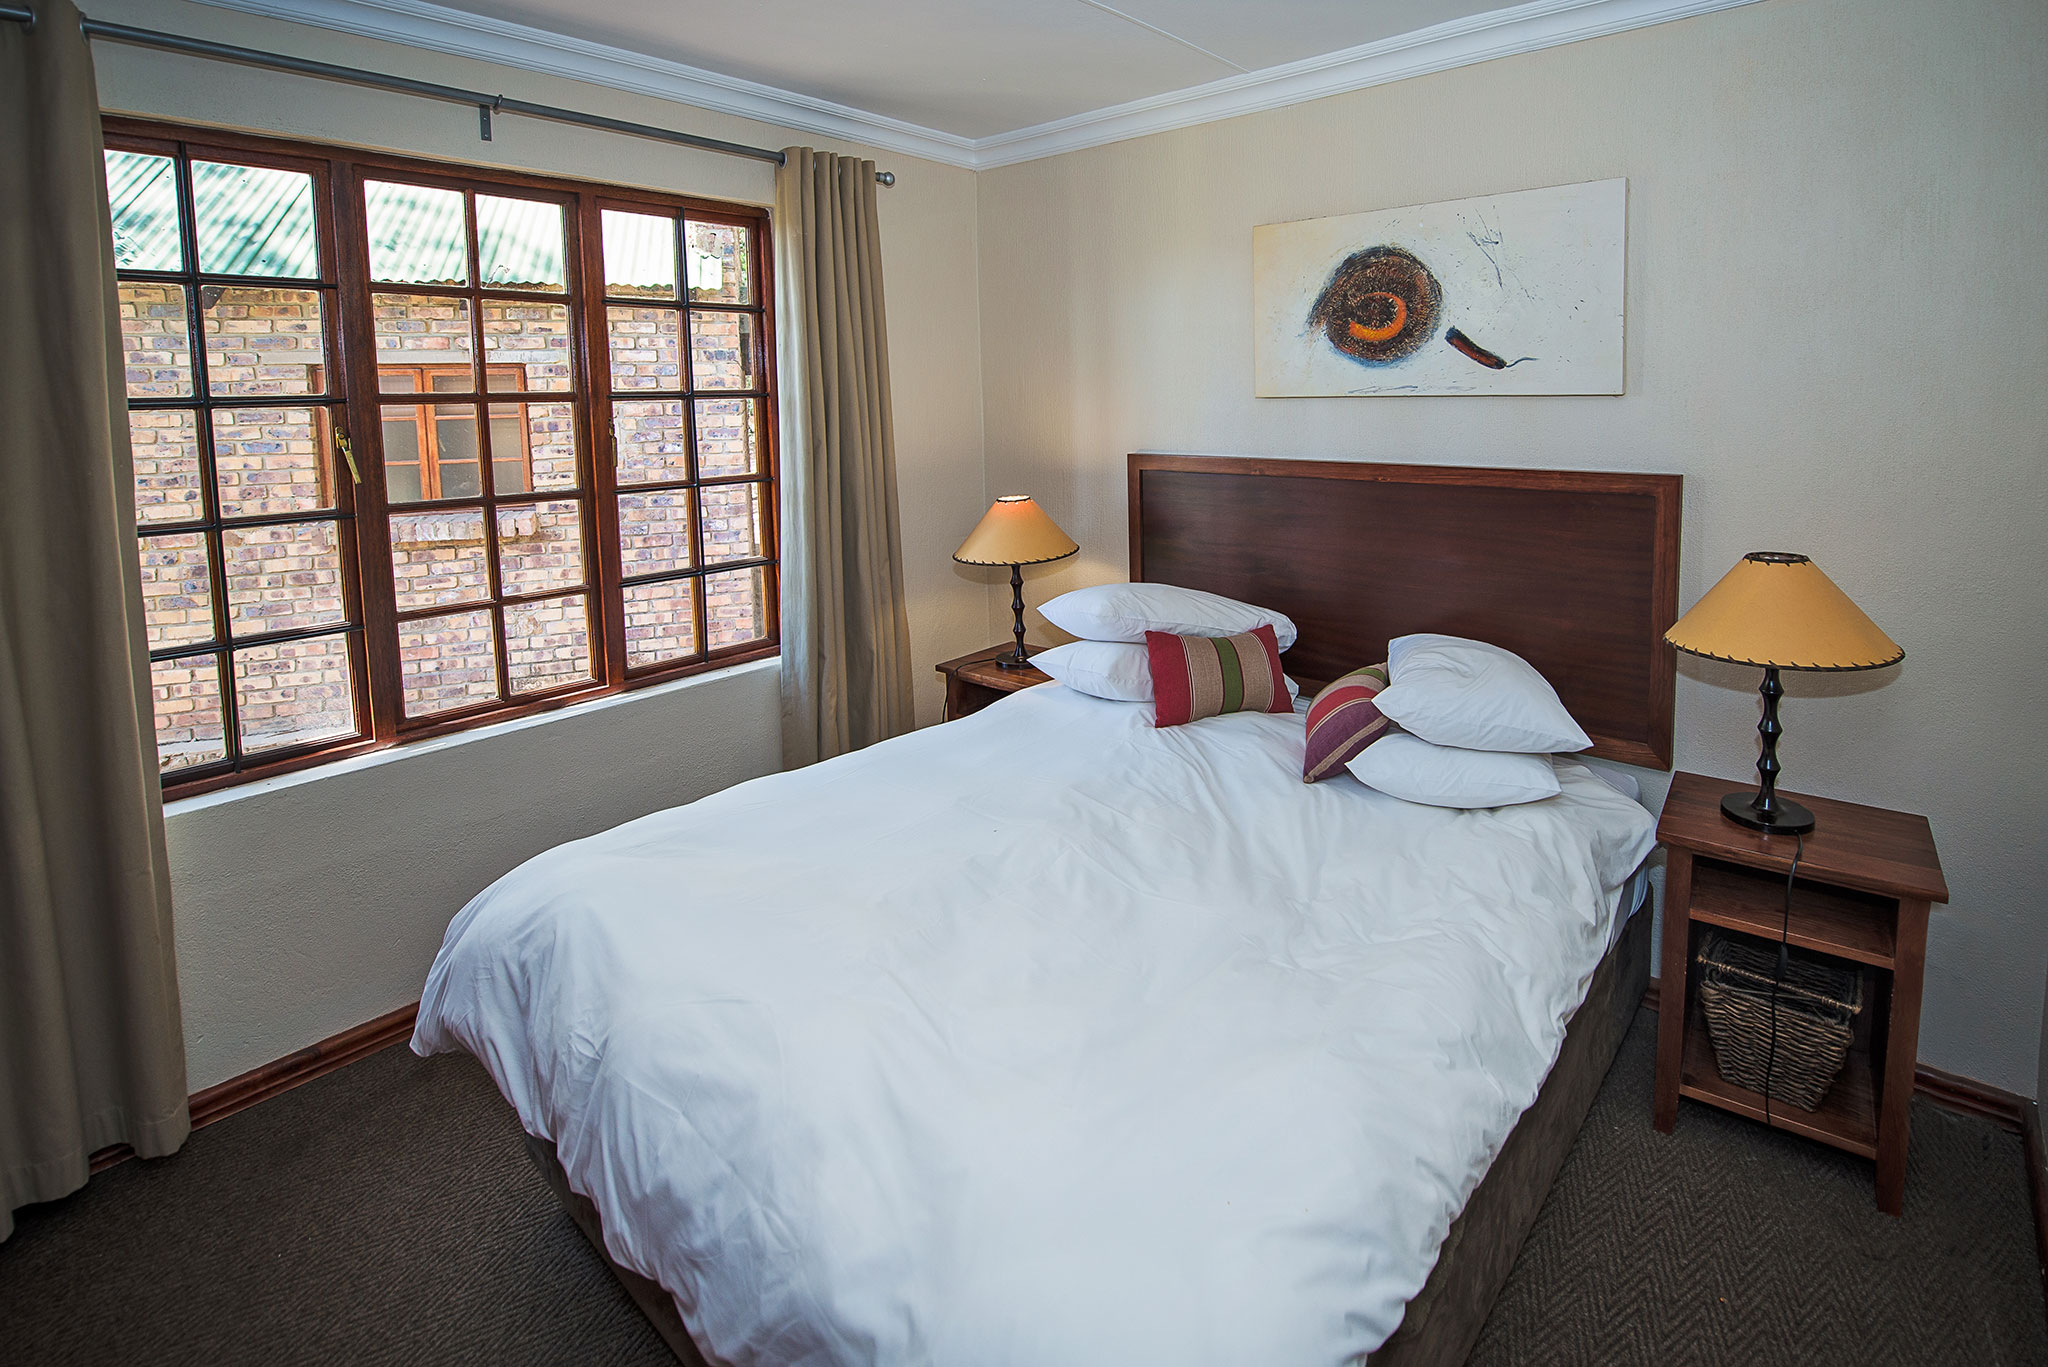 Main bedroom of self-catering suites